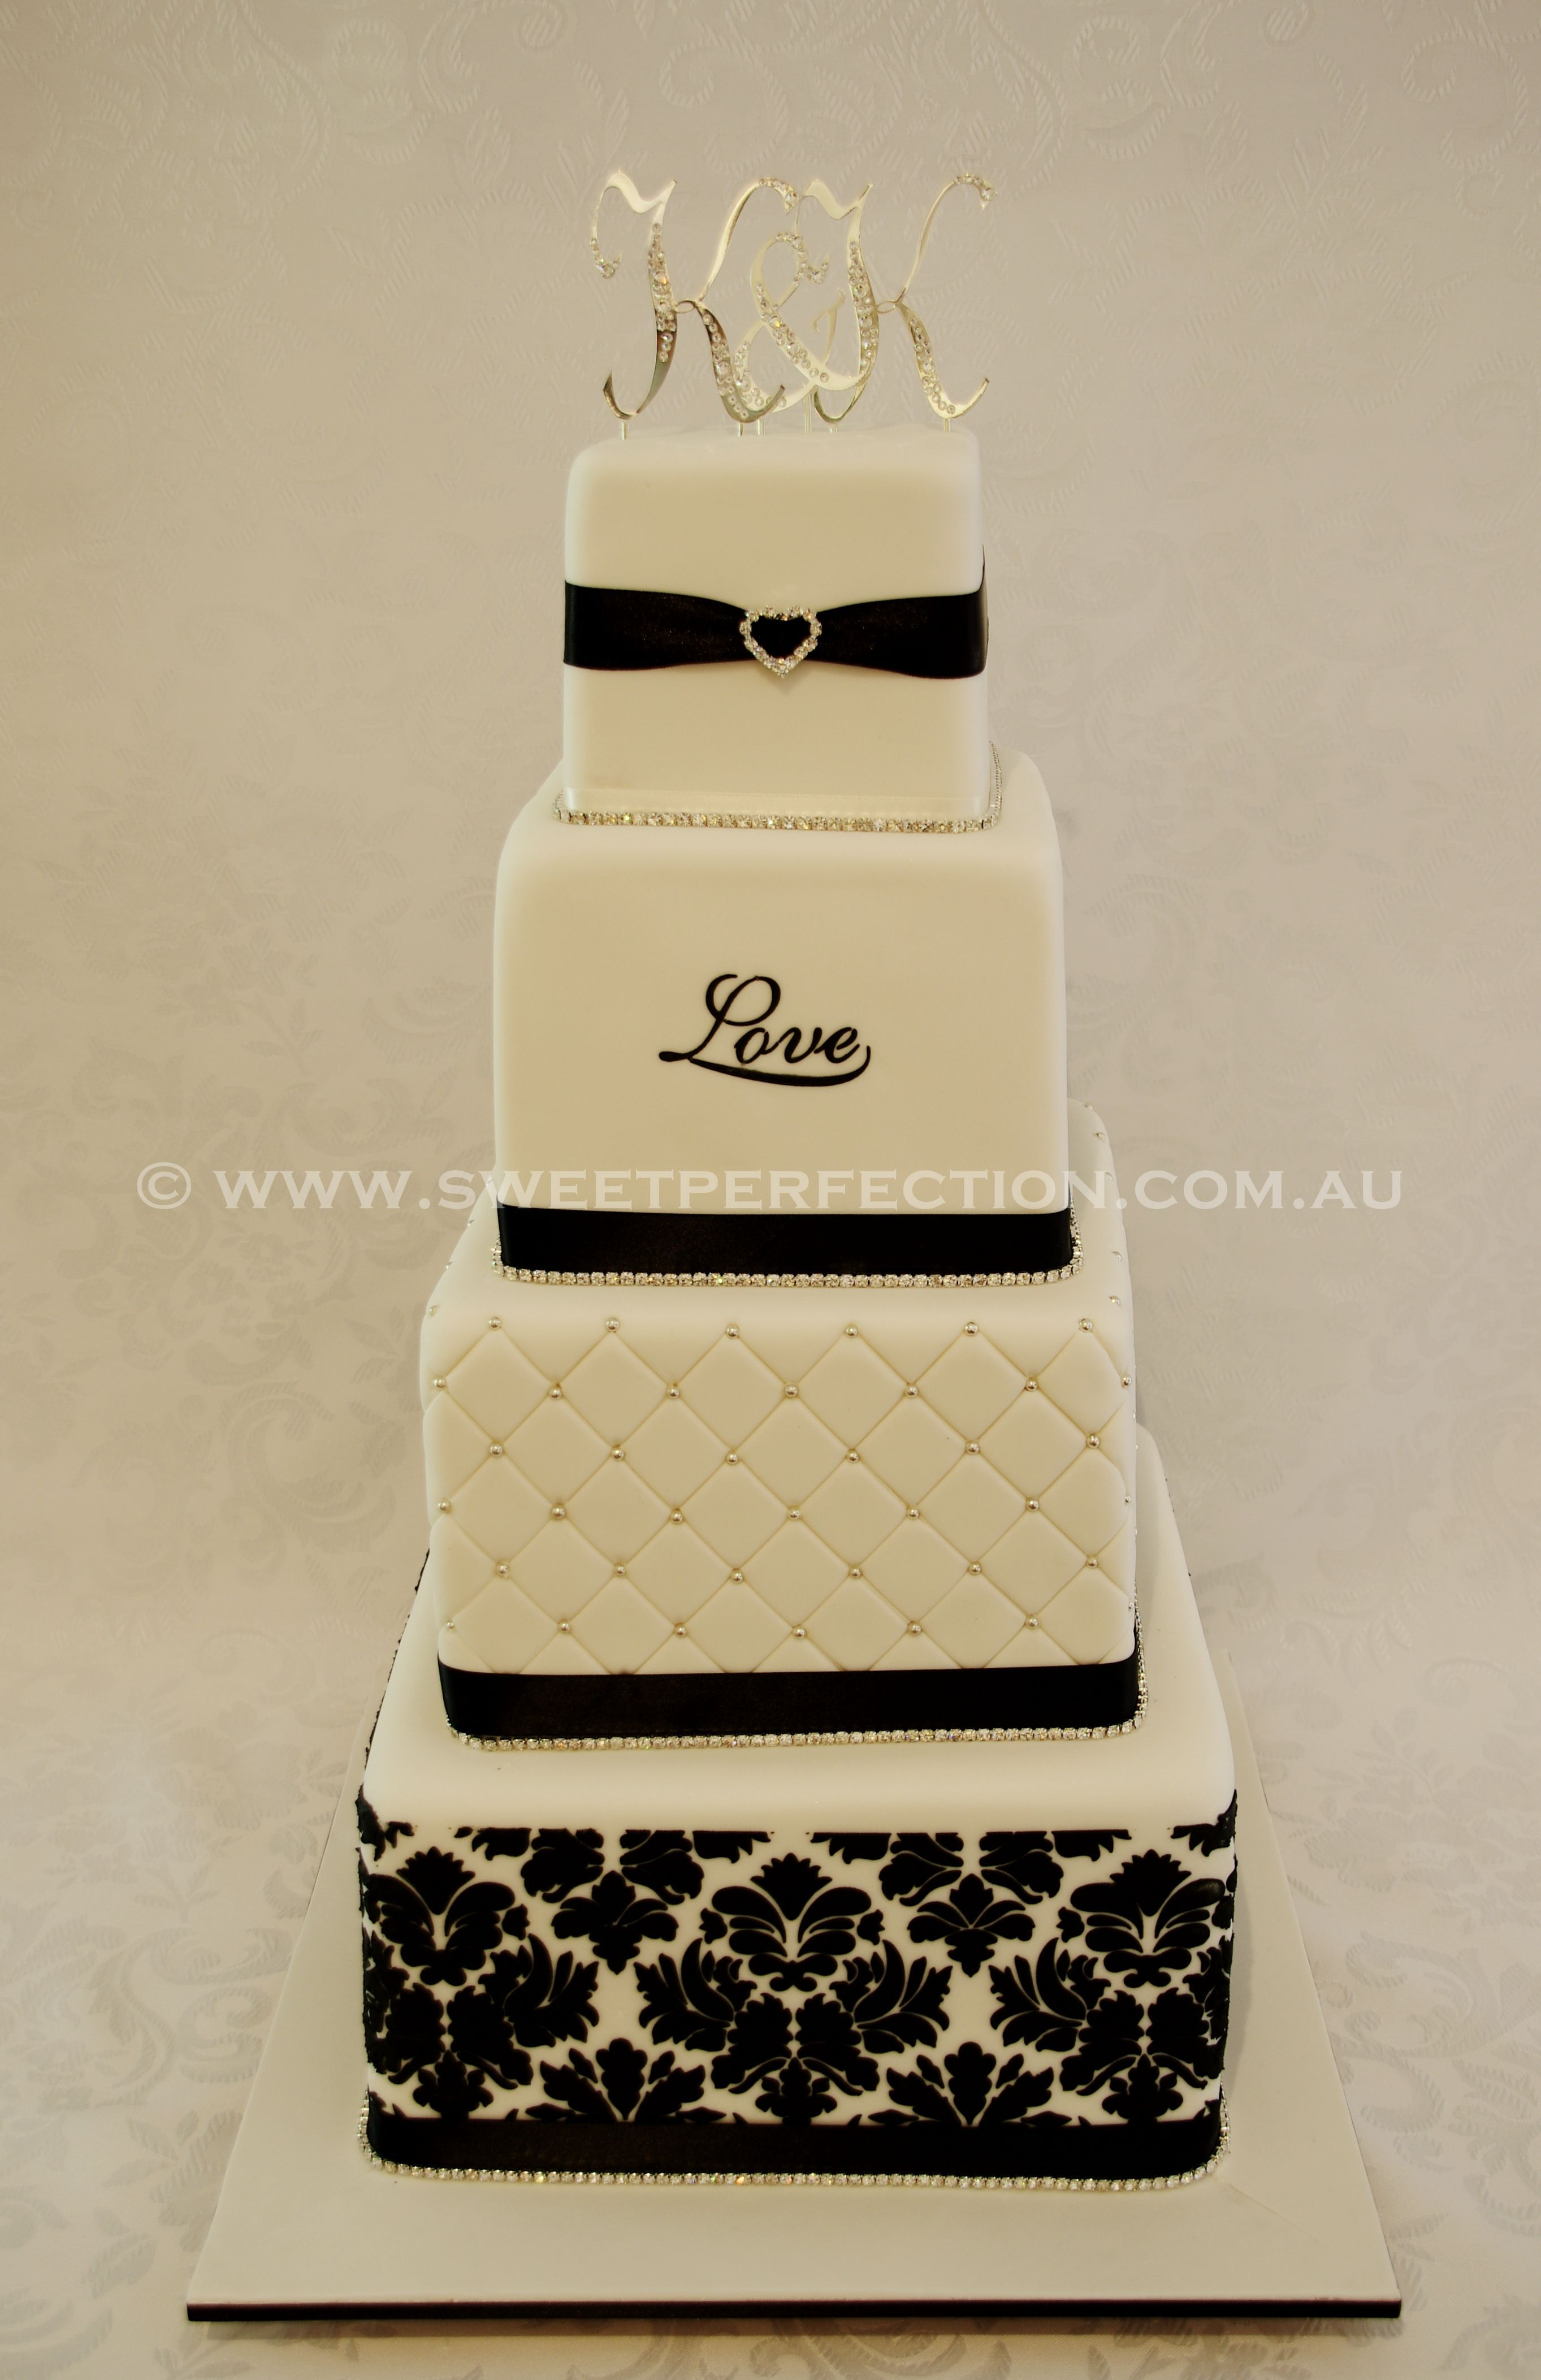 Wedding decorations styles october 2018 Black and white with bling in four square tiers Seriously elegant